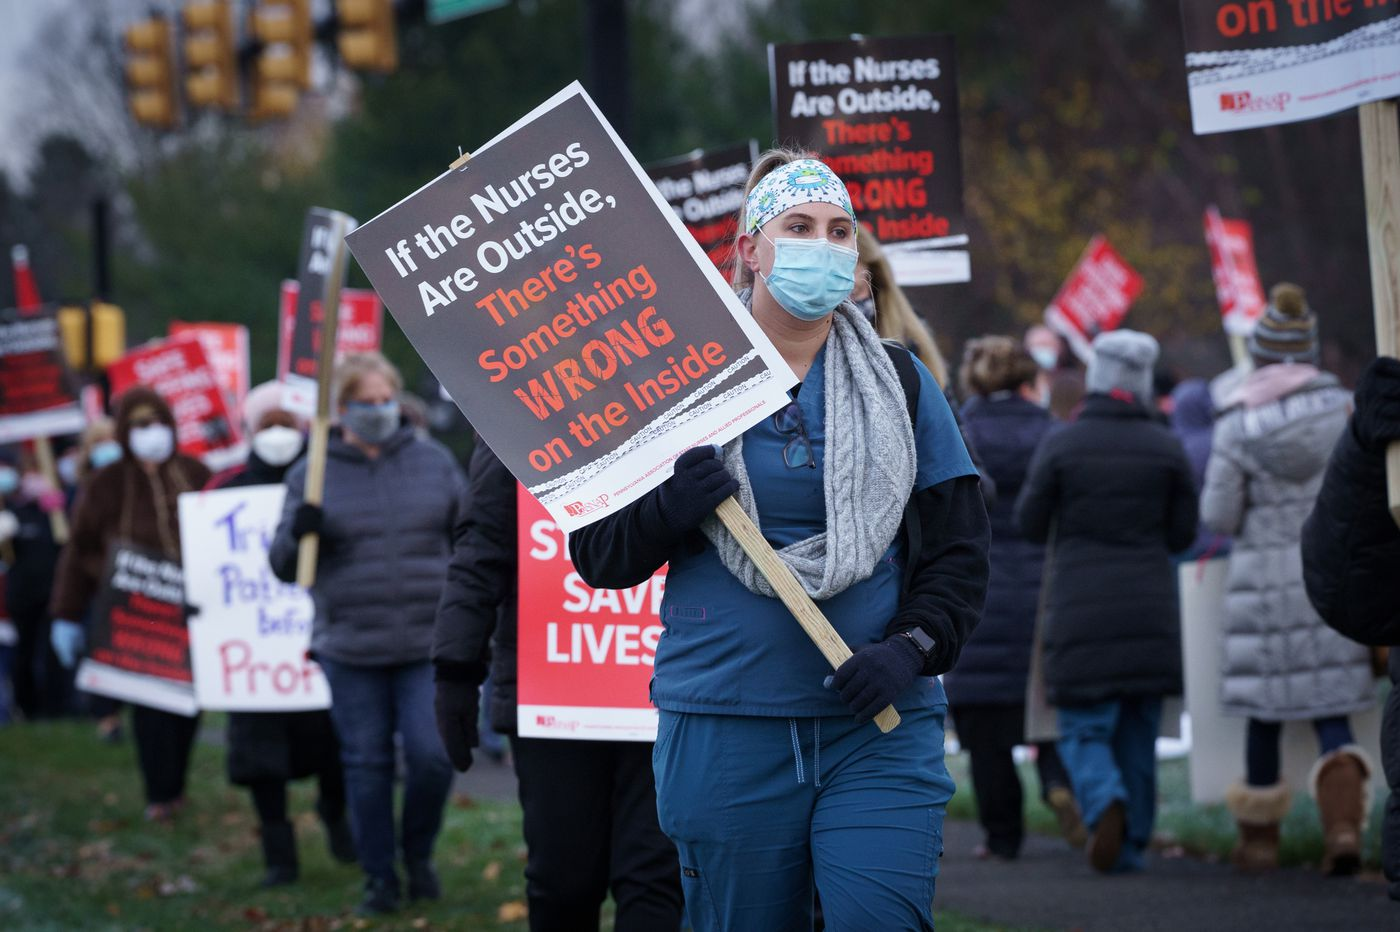 As coronavirus cases rise, 800 Bucks County nurses go on strike over 'dangerous' staffing levels